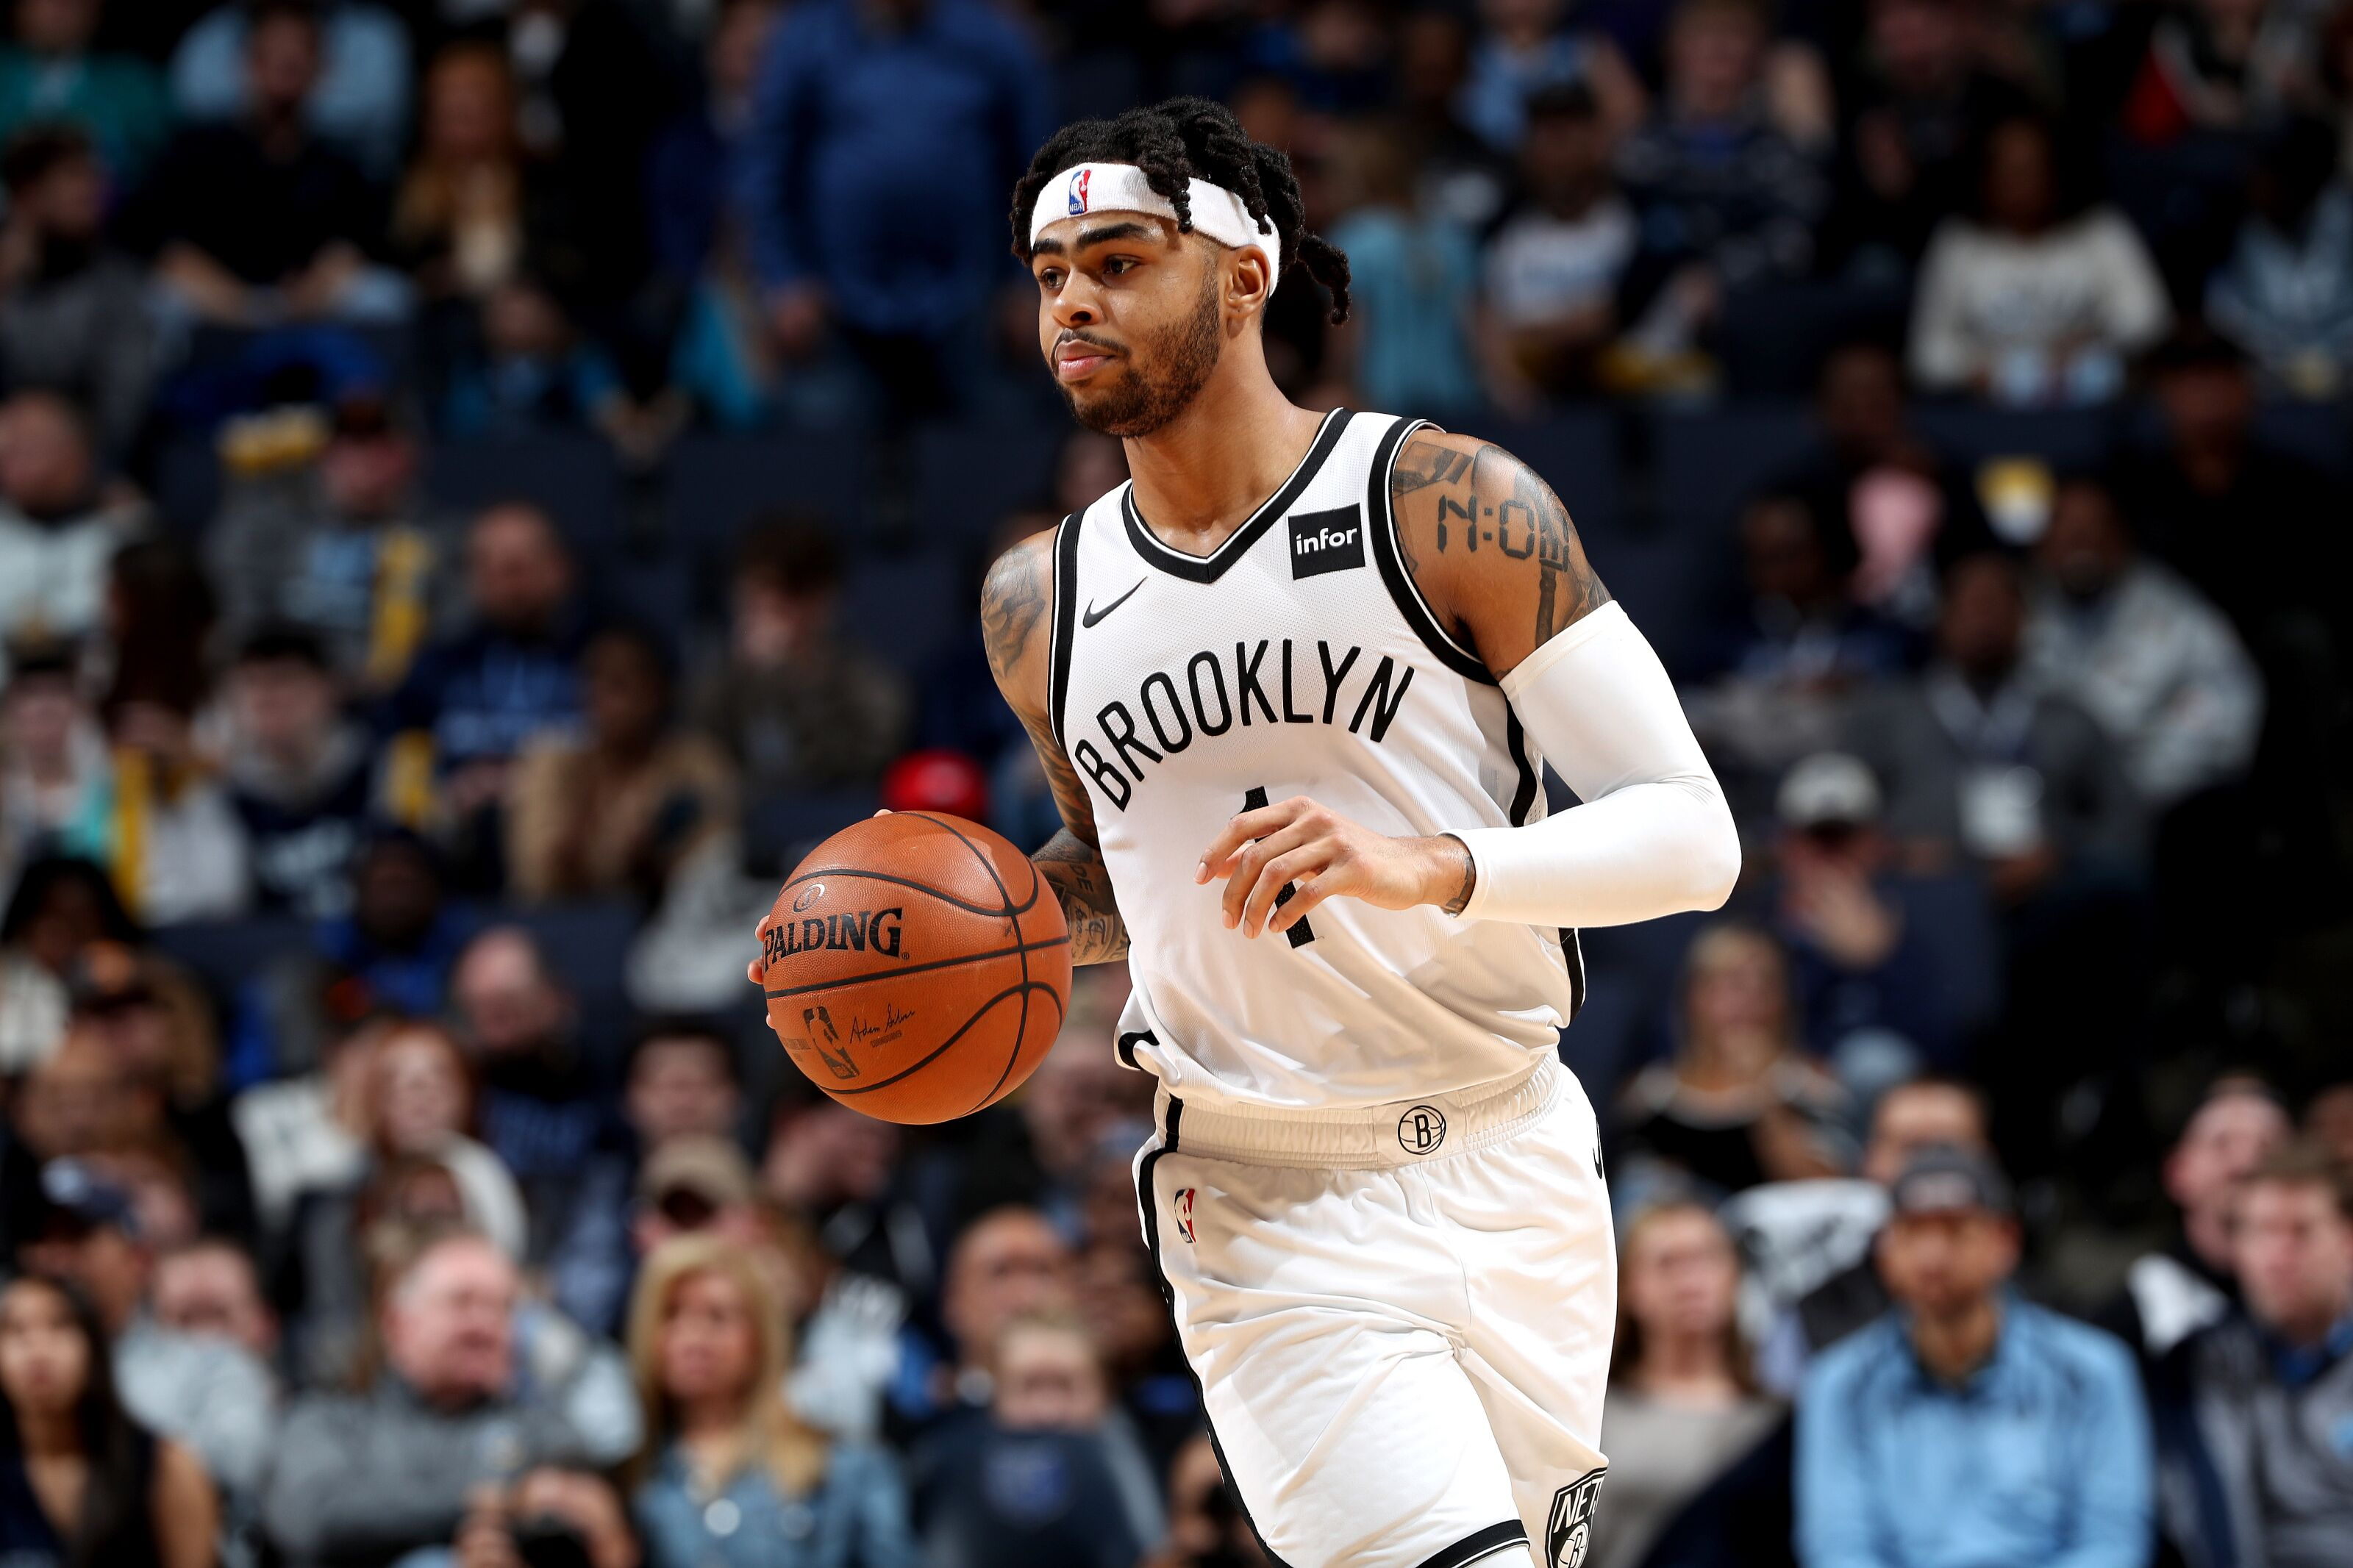 Brooklyn Nets: D'Angelo Russell has proven he's future of Nets